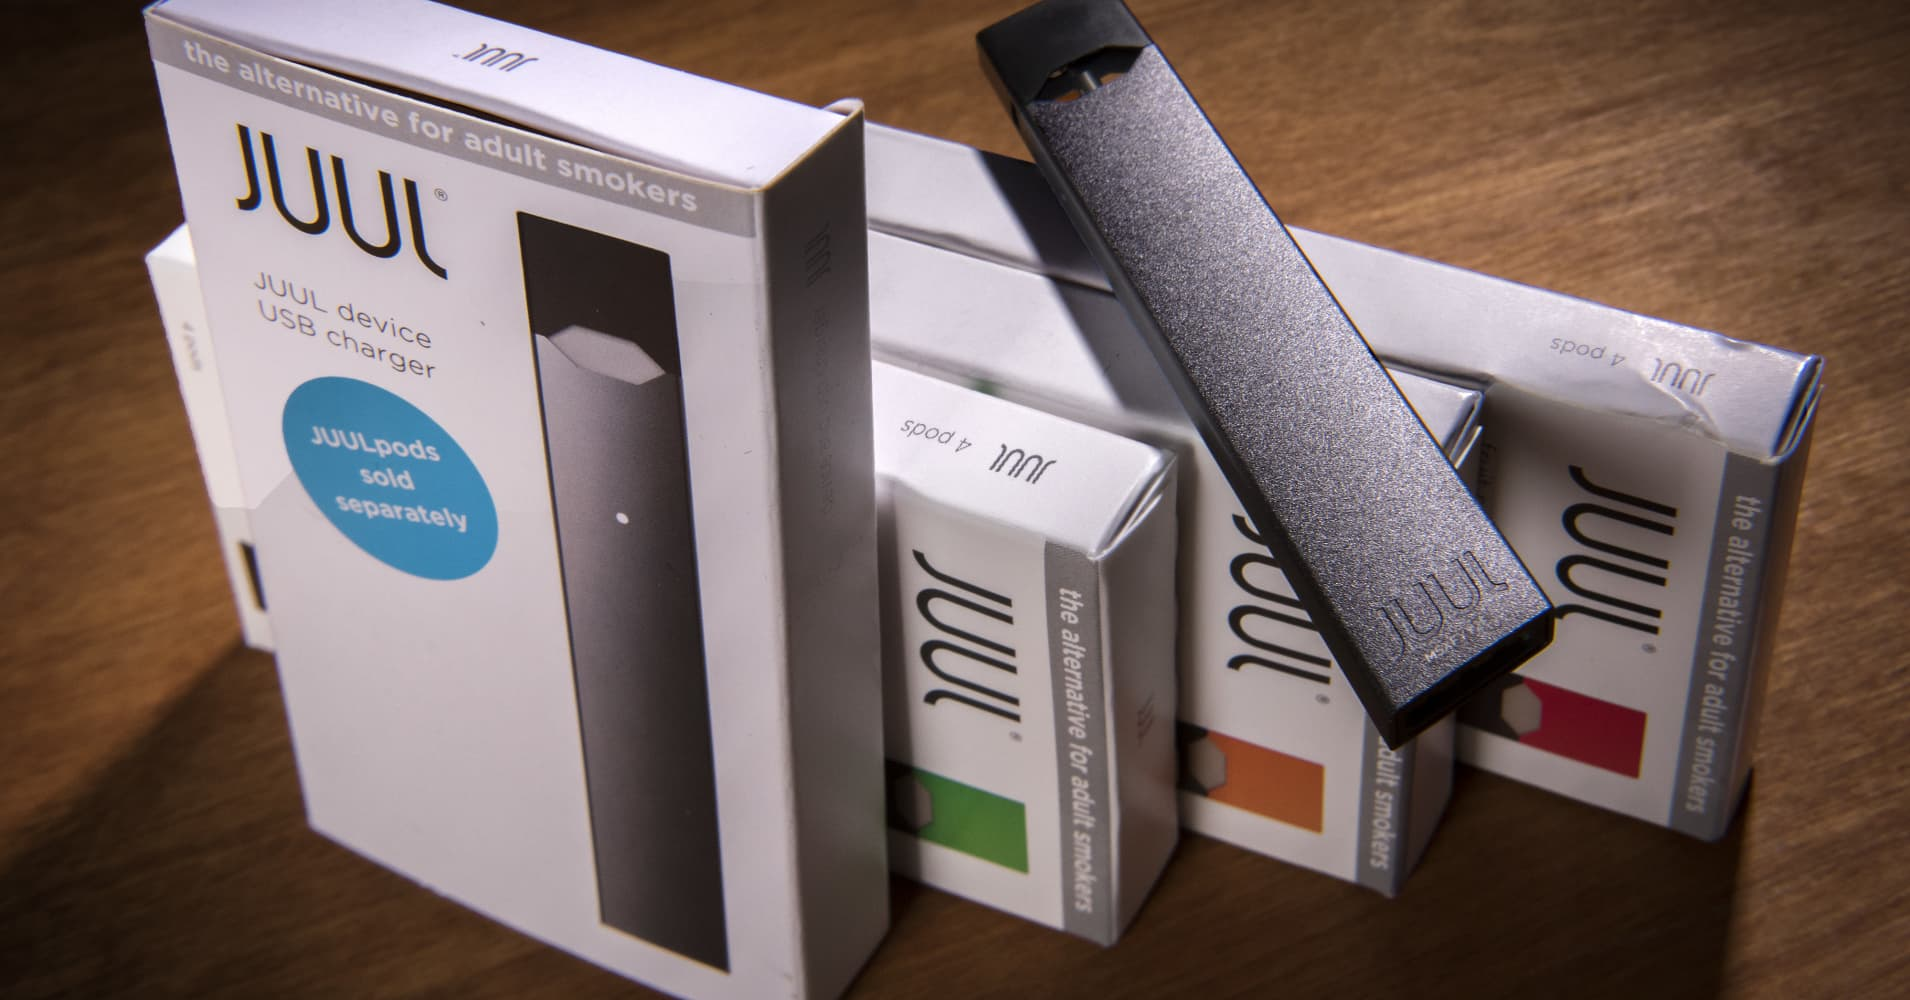 Altria is reportedly in talks to take a minority stake in Juul